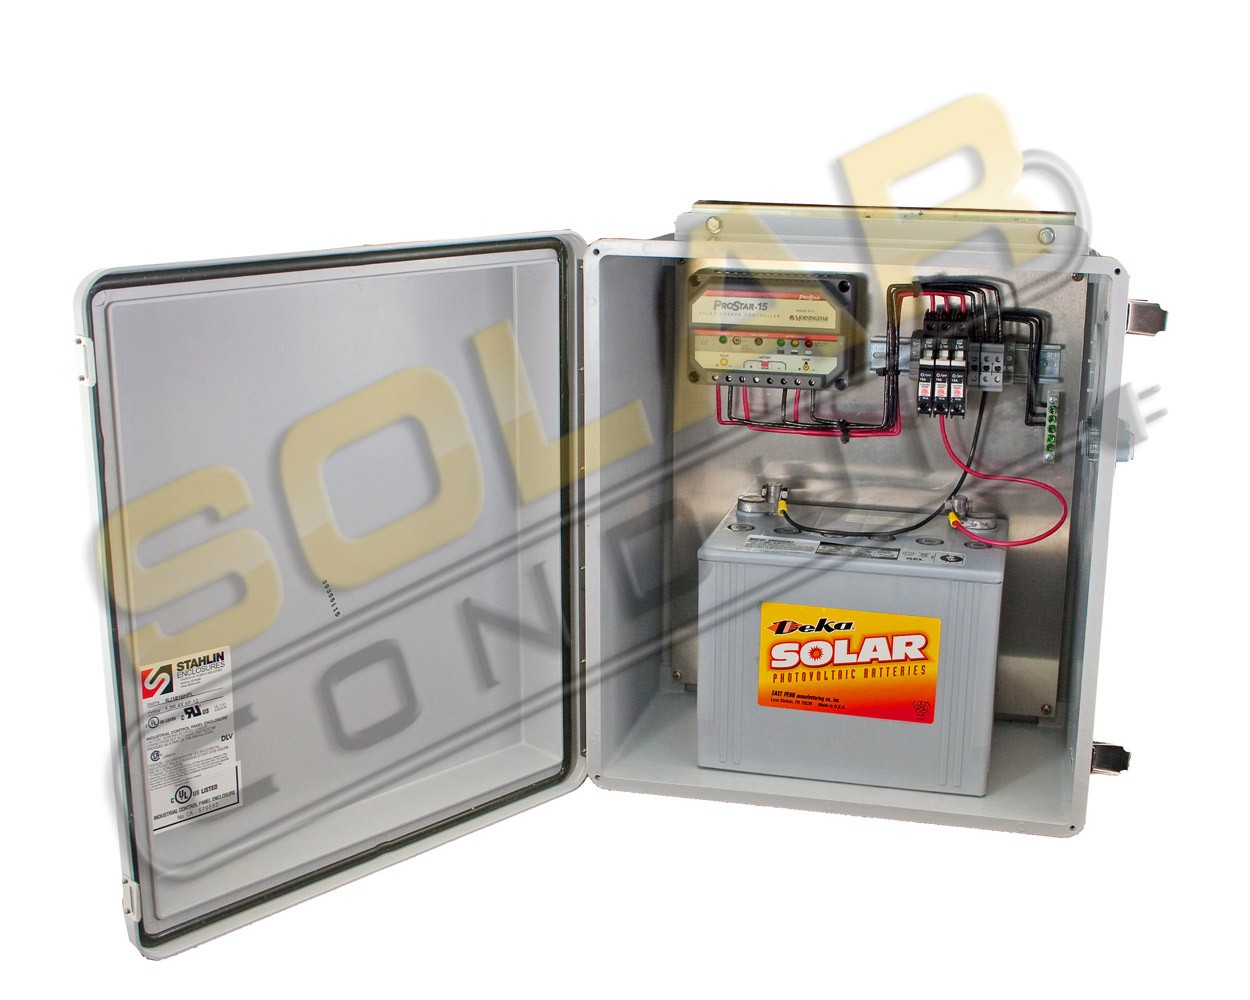 REMOTE POWER SYSTEM - 15 AMP, 12 VDC CHARGE CONTROLLER / 79 AH BATTERY / 85 WATT PV MODULE, KSOL POWER